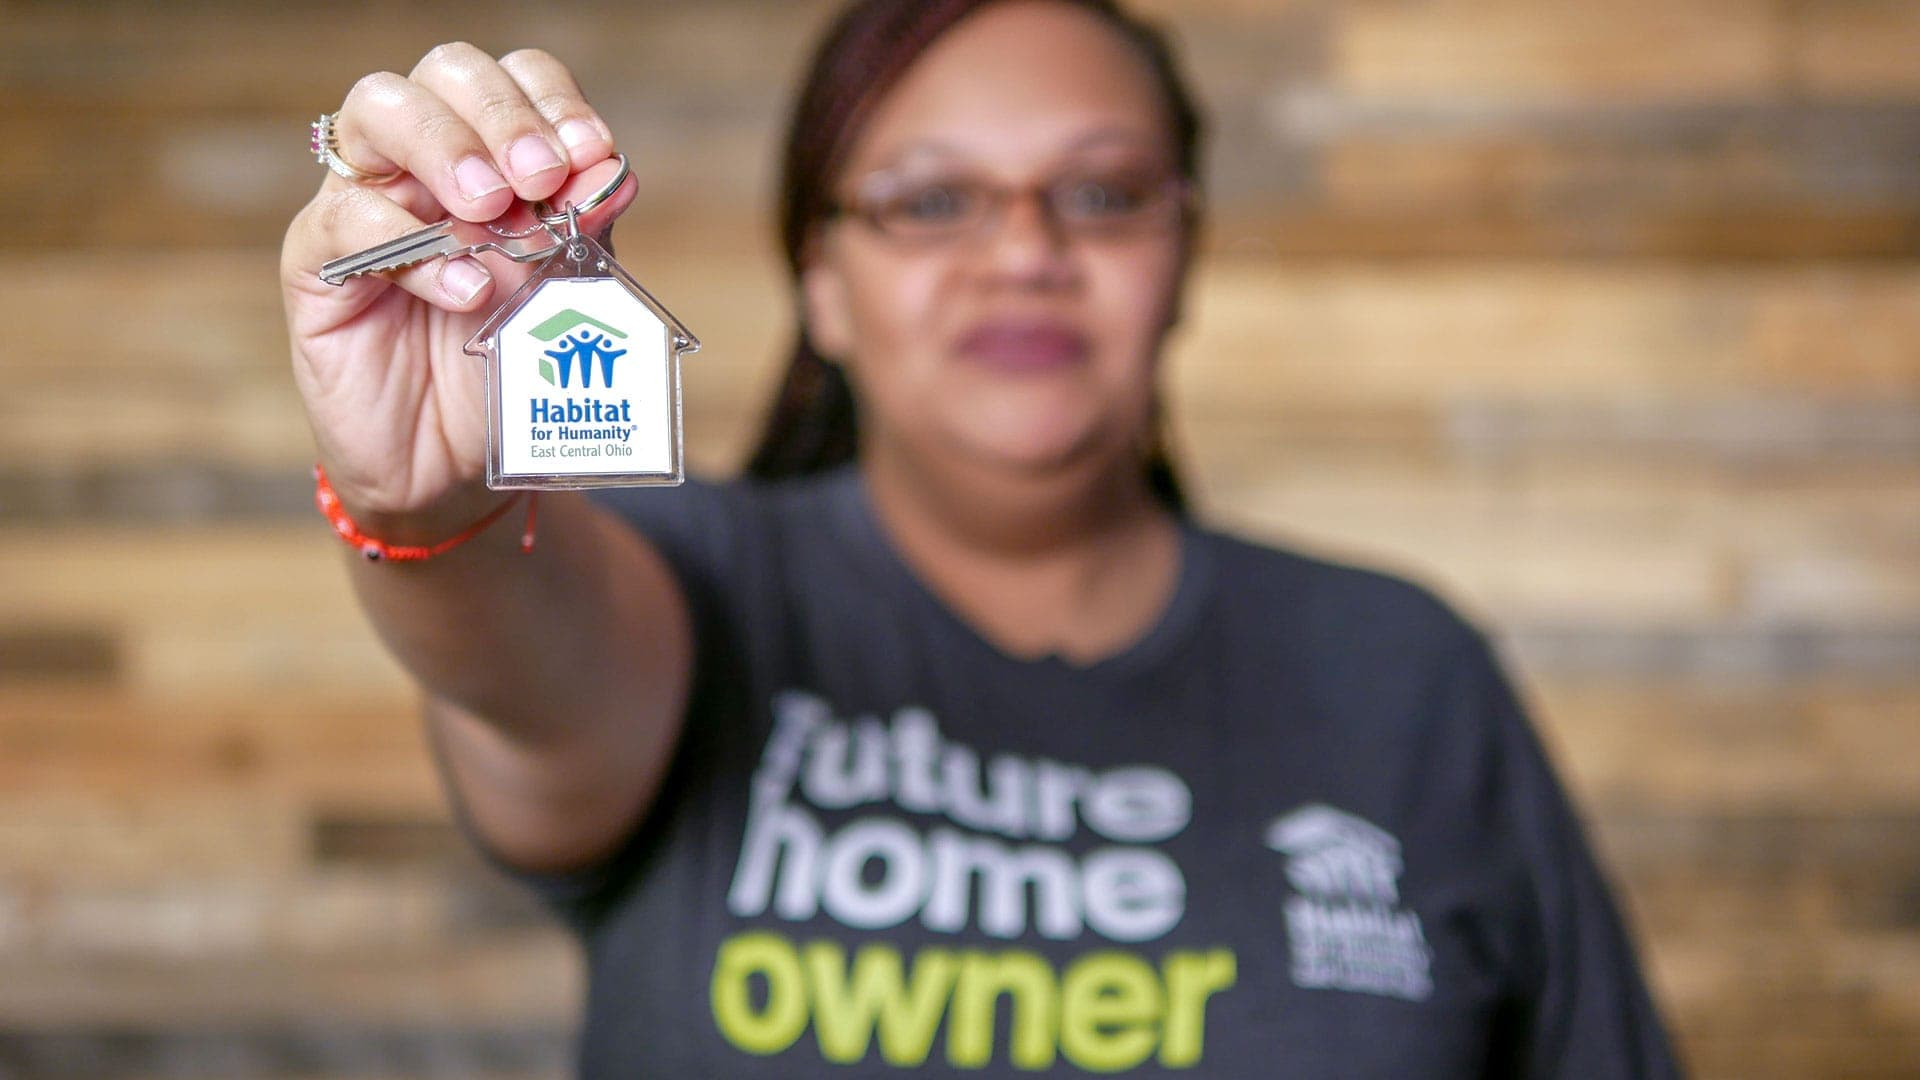 Habitat for Humanity homeowner holding keys to home.